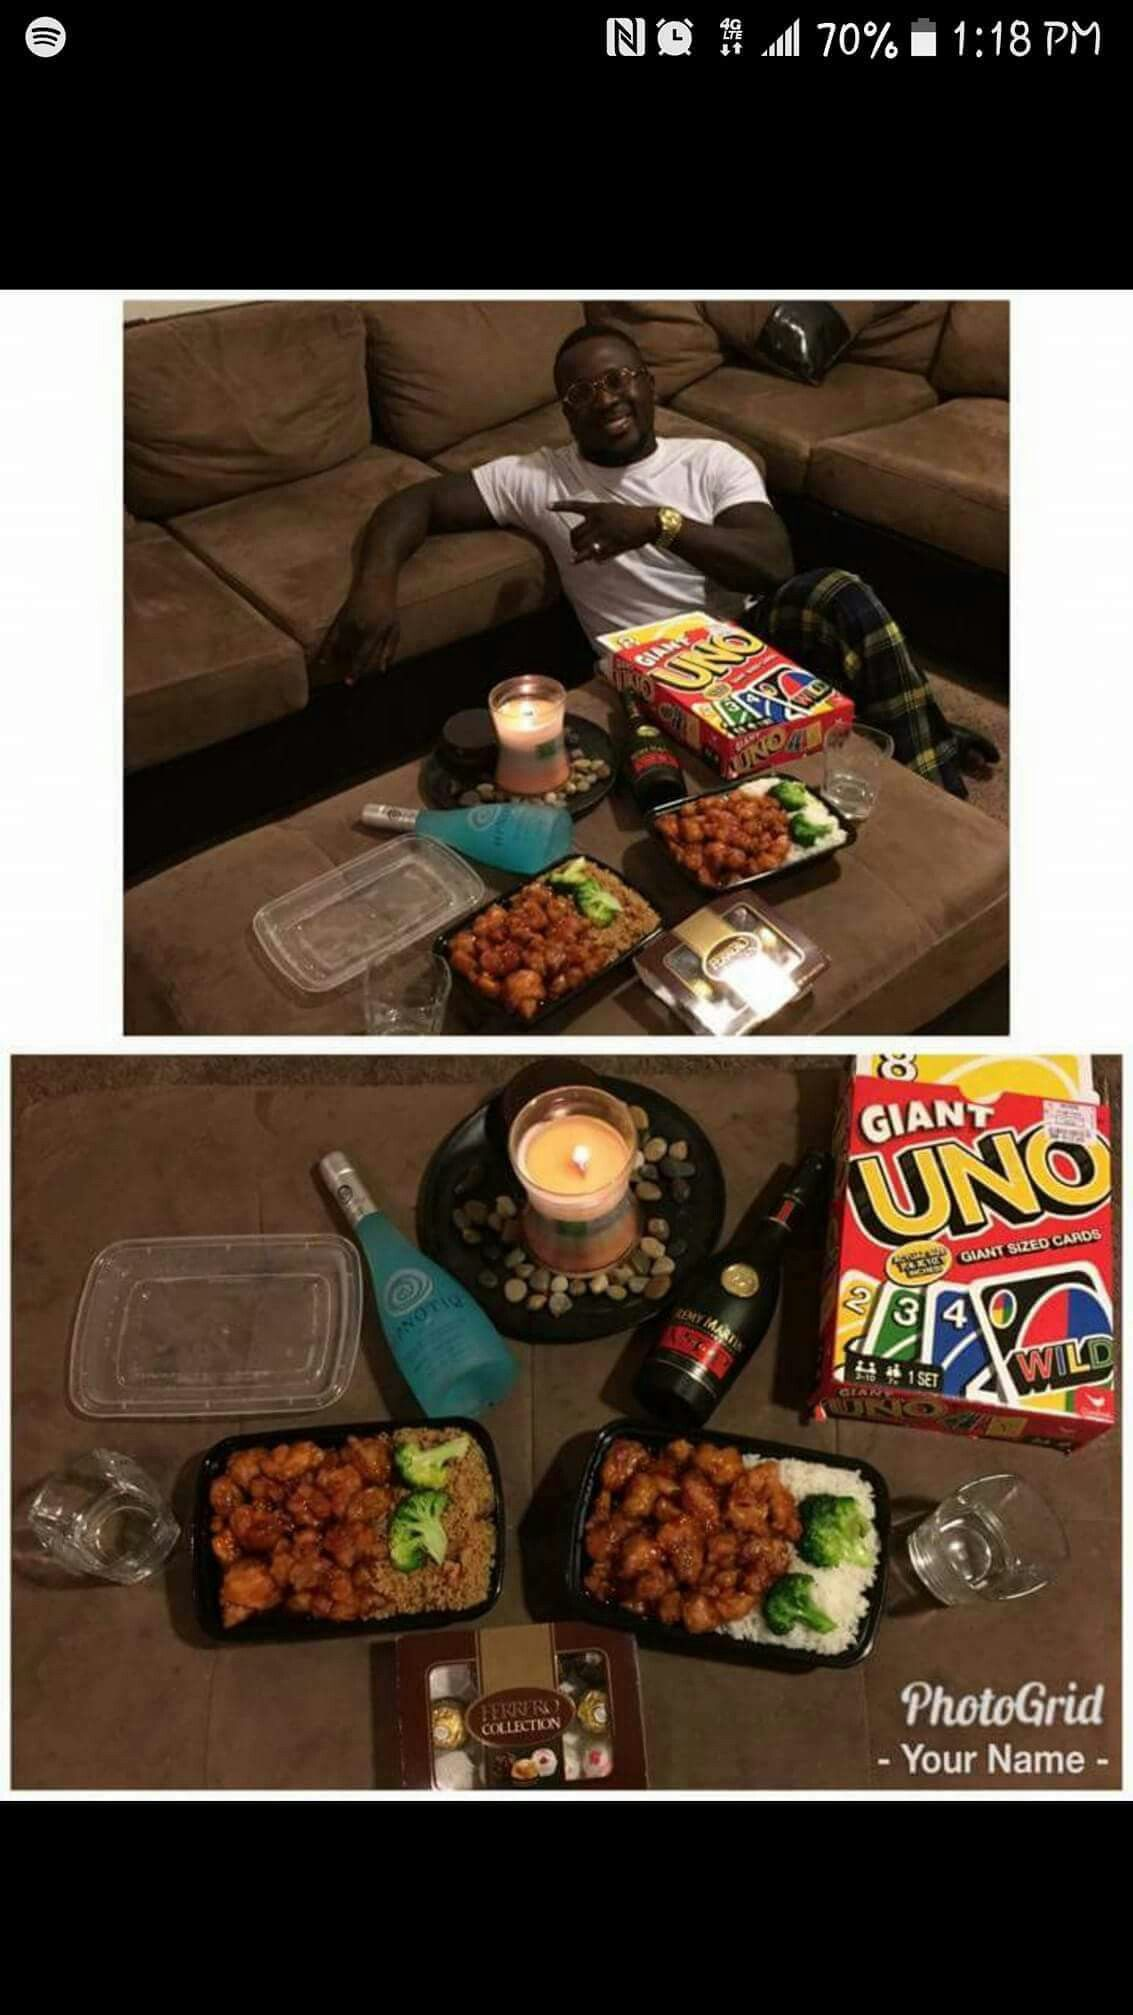 Pin by Nessalové on BAE | Cute date ideas, Romantic date ... Surprise Romantic Night At Home